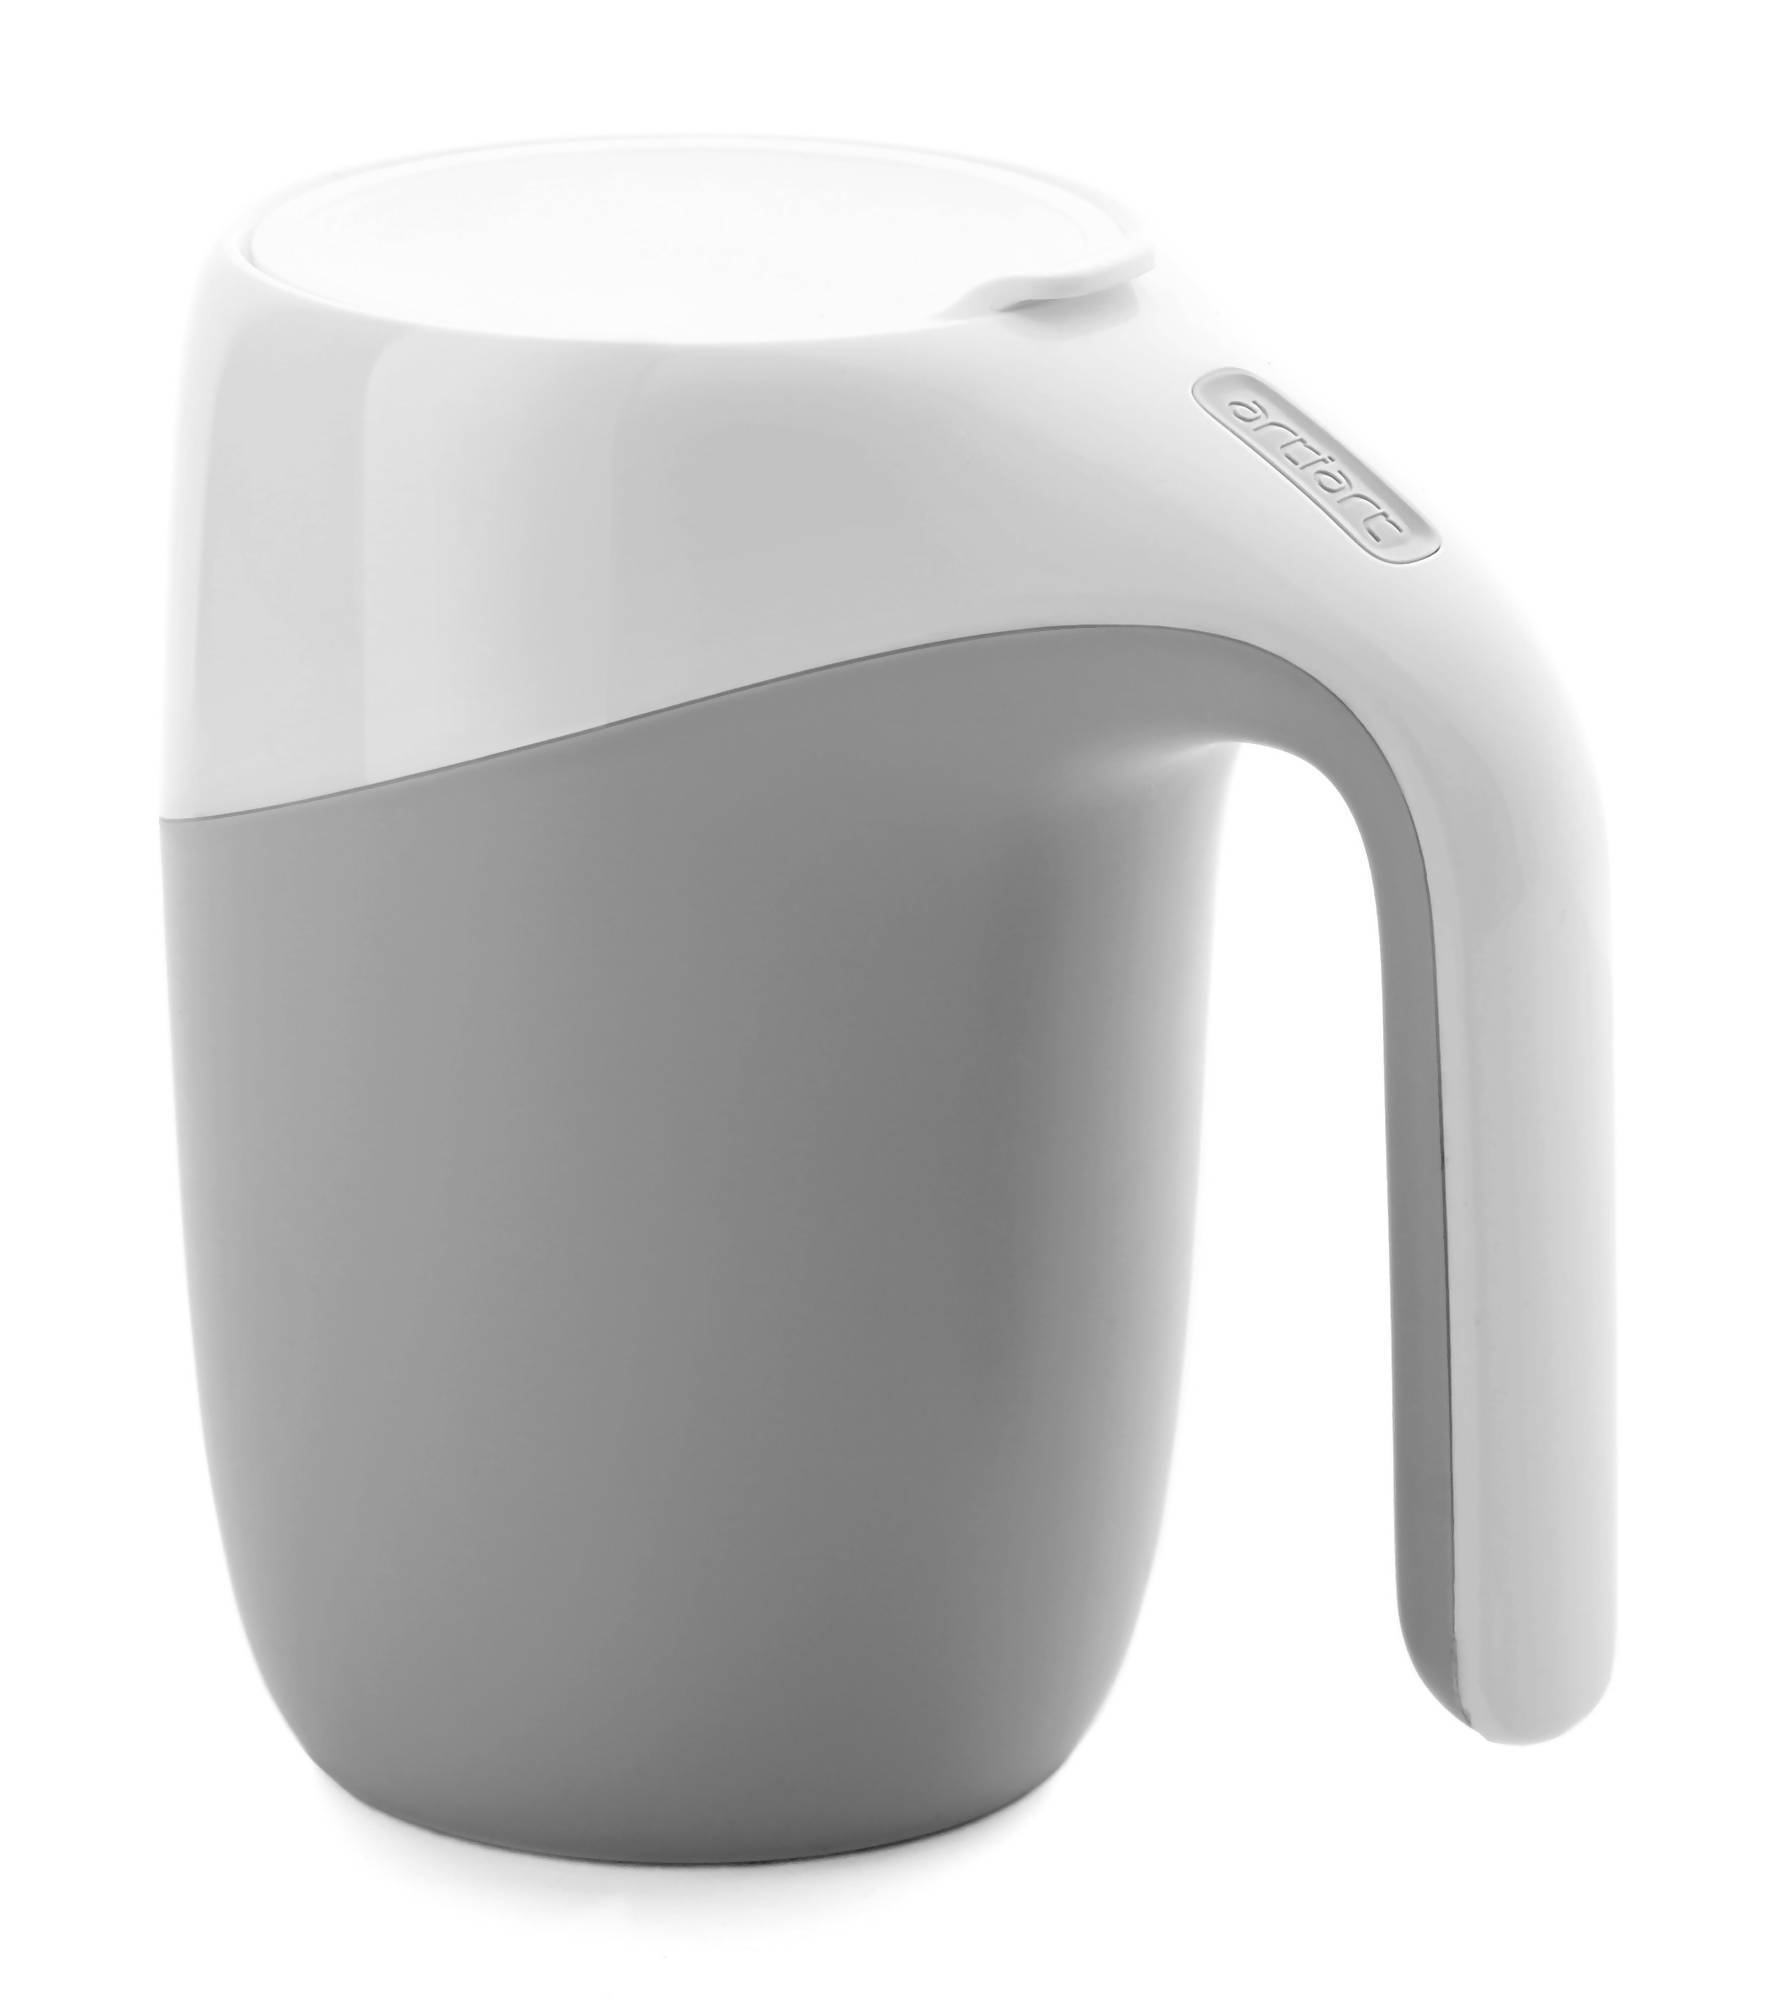 Suction Mug Elephant Thermal Design By ArtiArt - Thermal Mugs - Allink Int Pte Ltd - Naiise